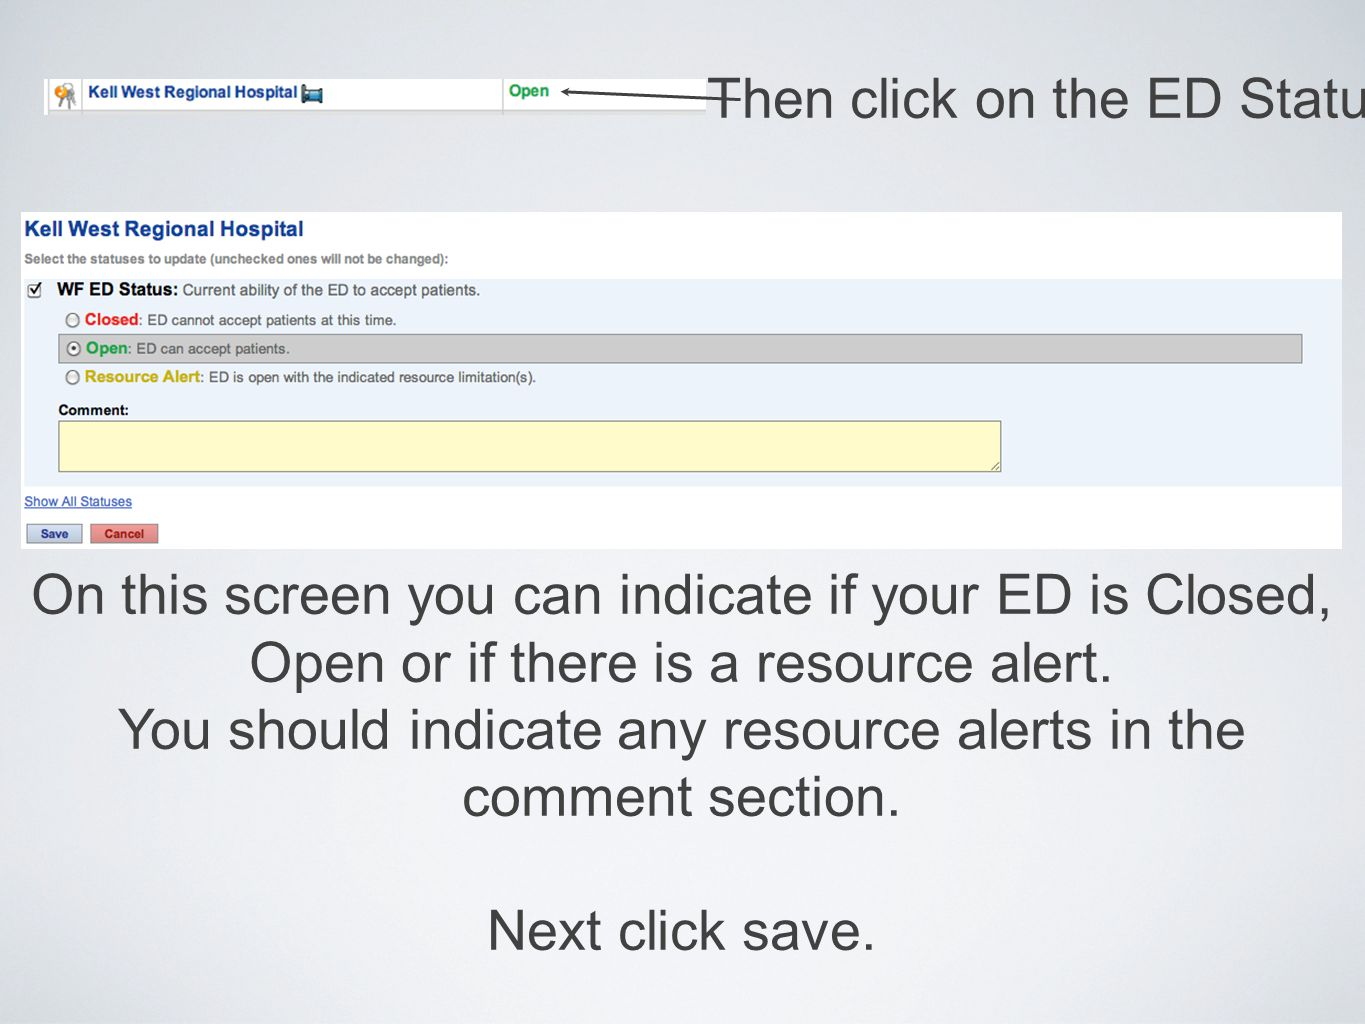 Then click on the ED Status On this screen you can indicate if your ED is Closed, Open or if there is a resource alert.